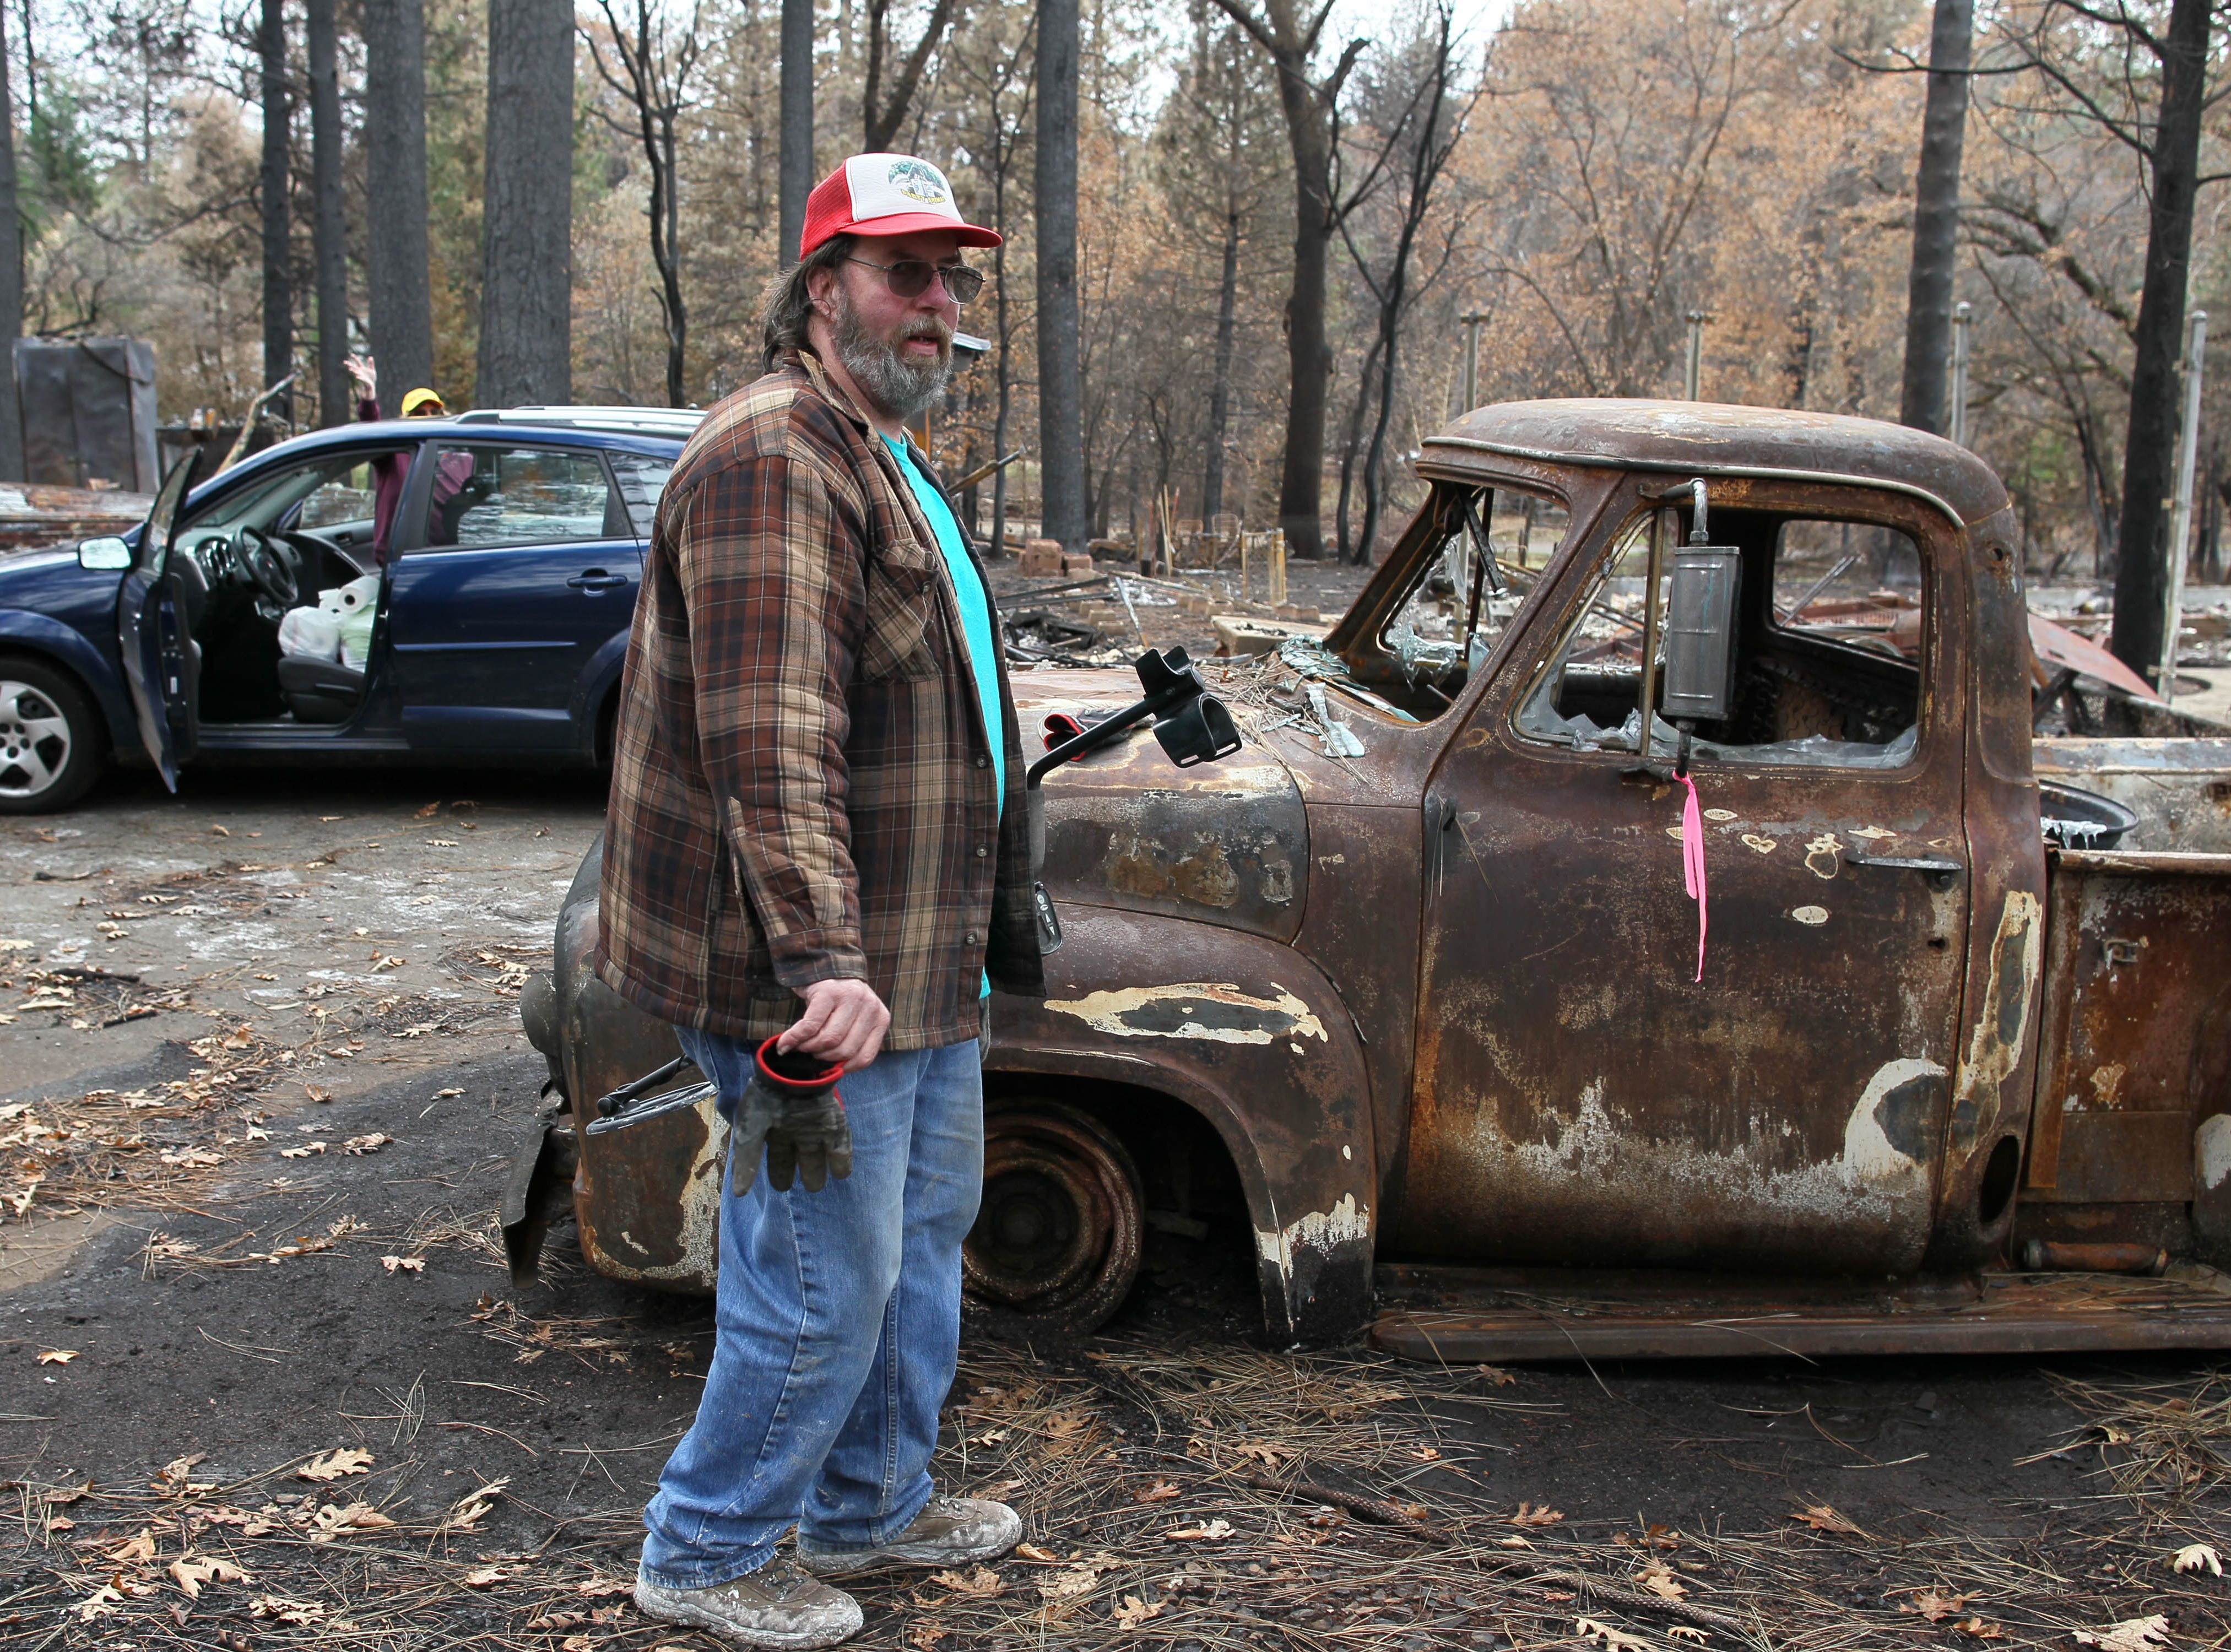 Stan Chormicle stands by his burned car. He and his wife returned to the remains of their Paradise home on Tuesday to salvage what they could.